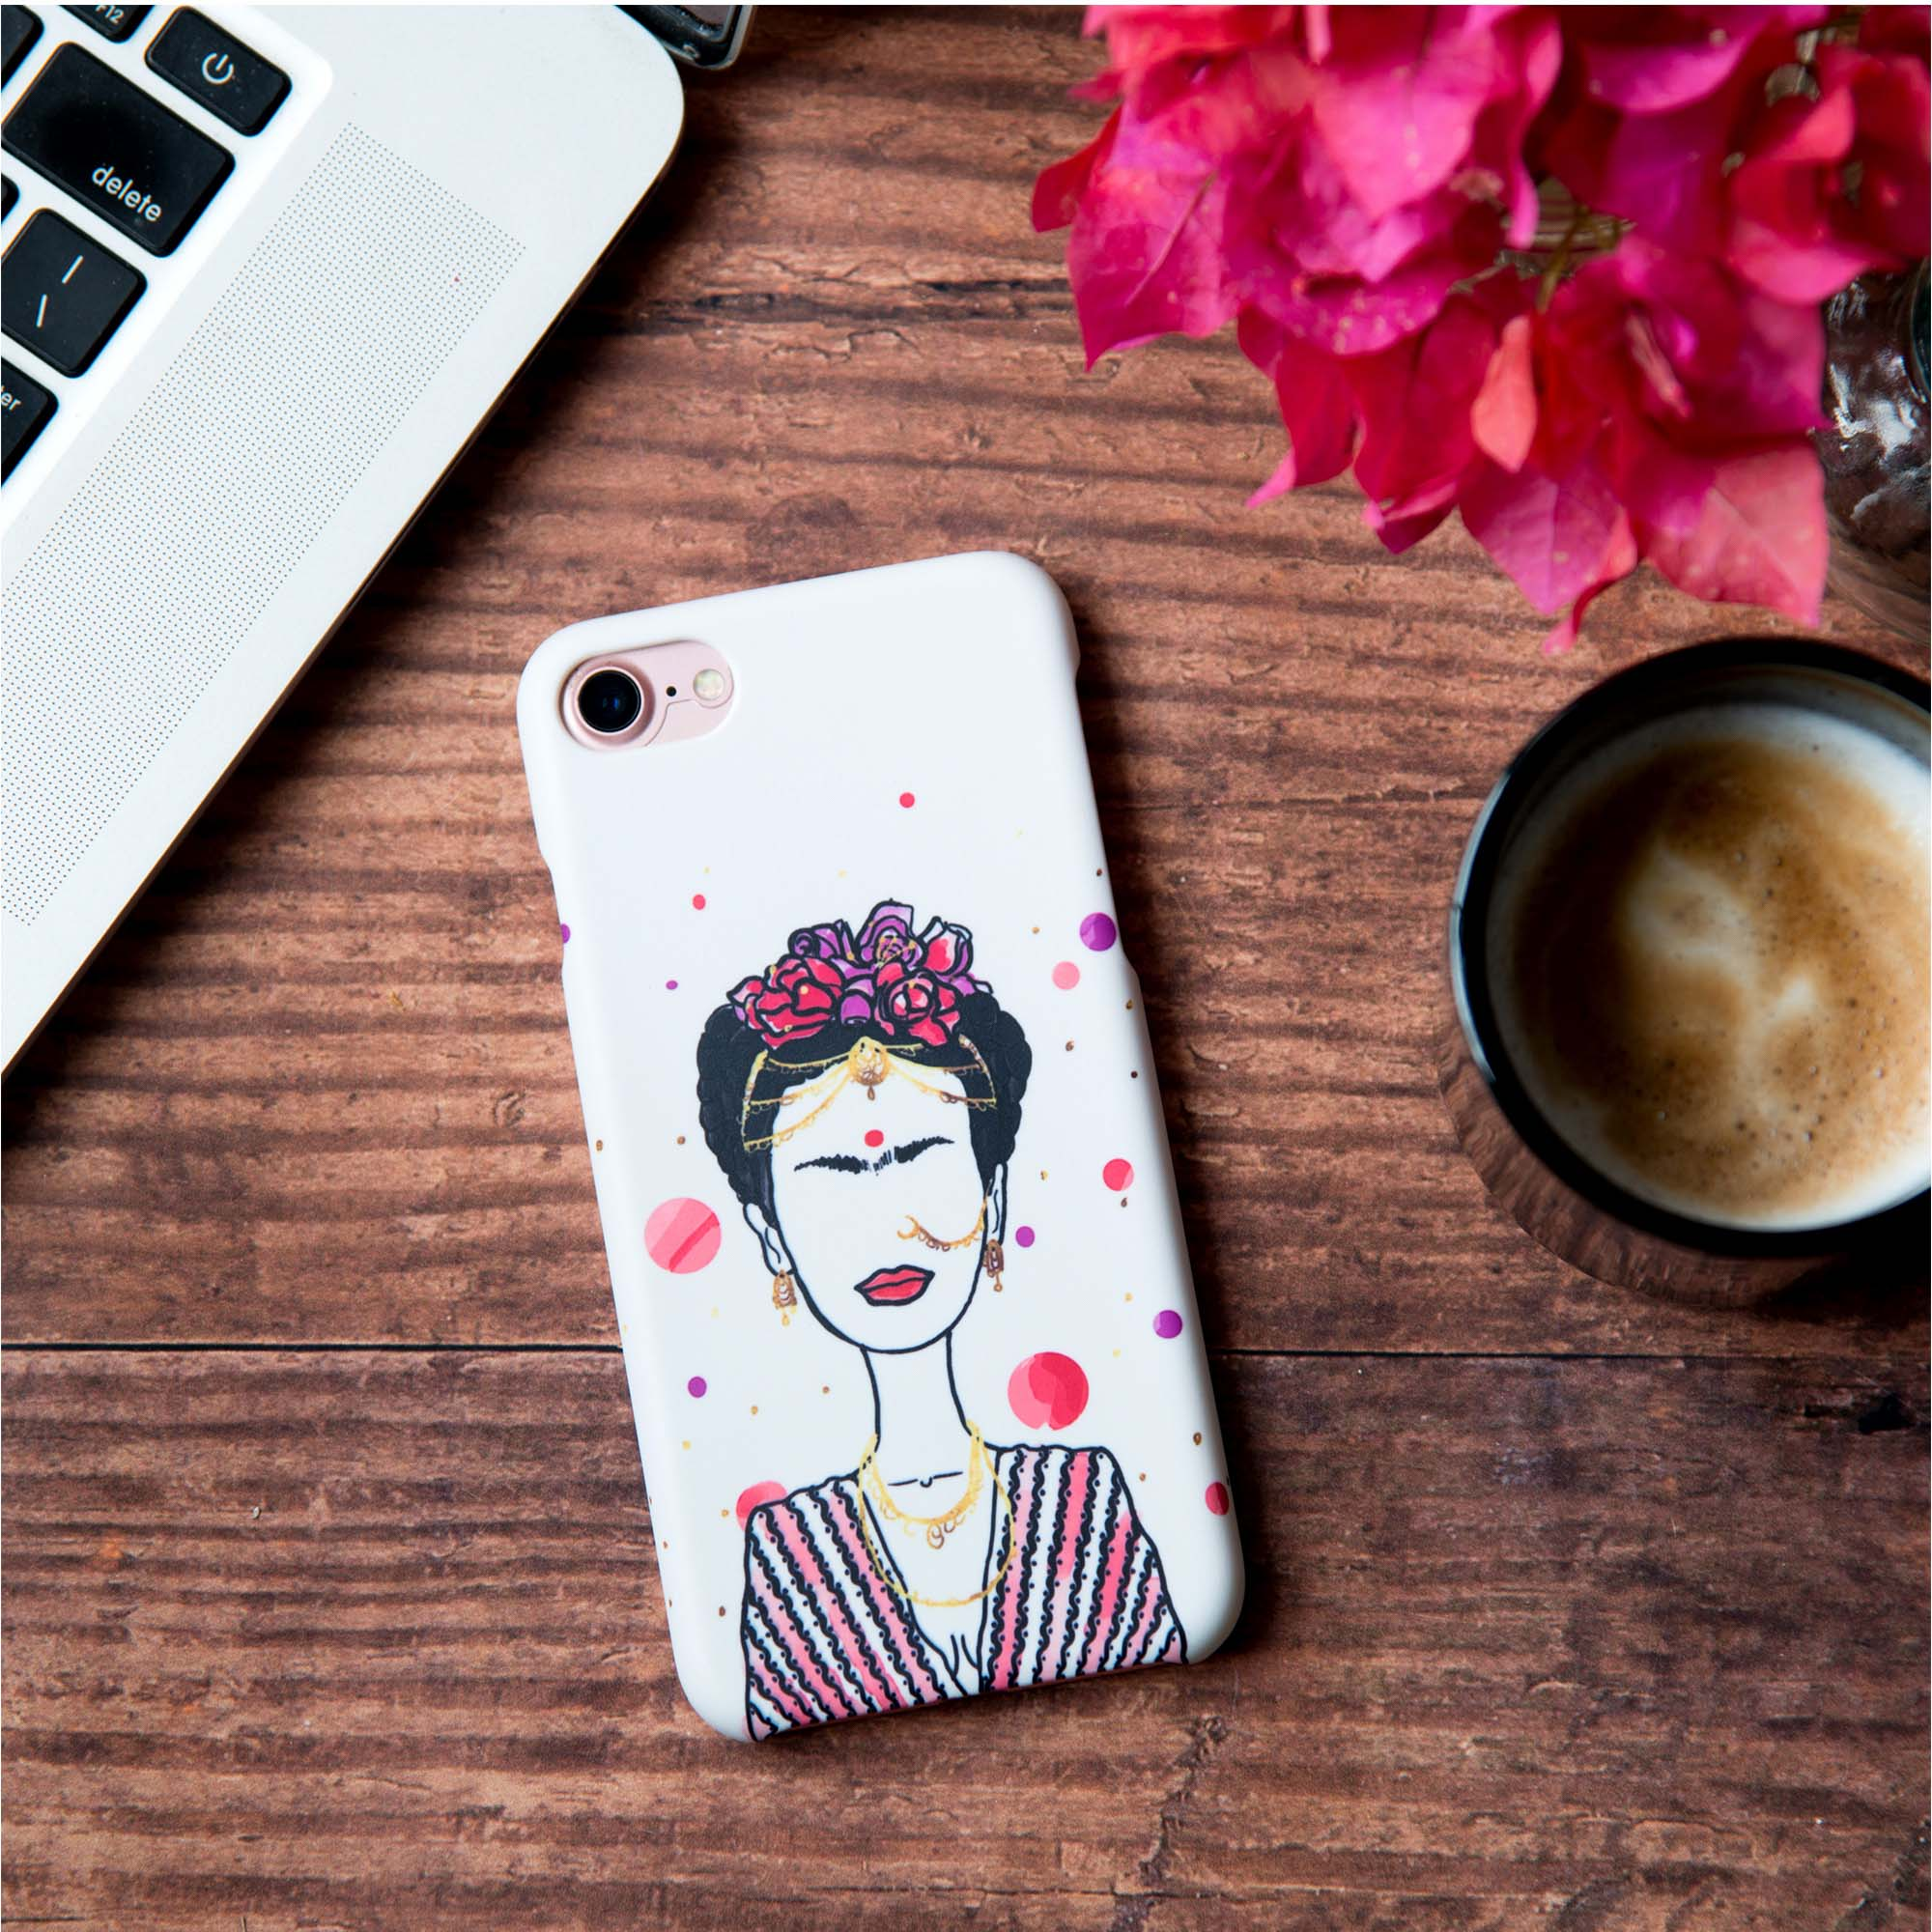 Frida Kahlo Iphone 6/6s Cover